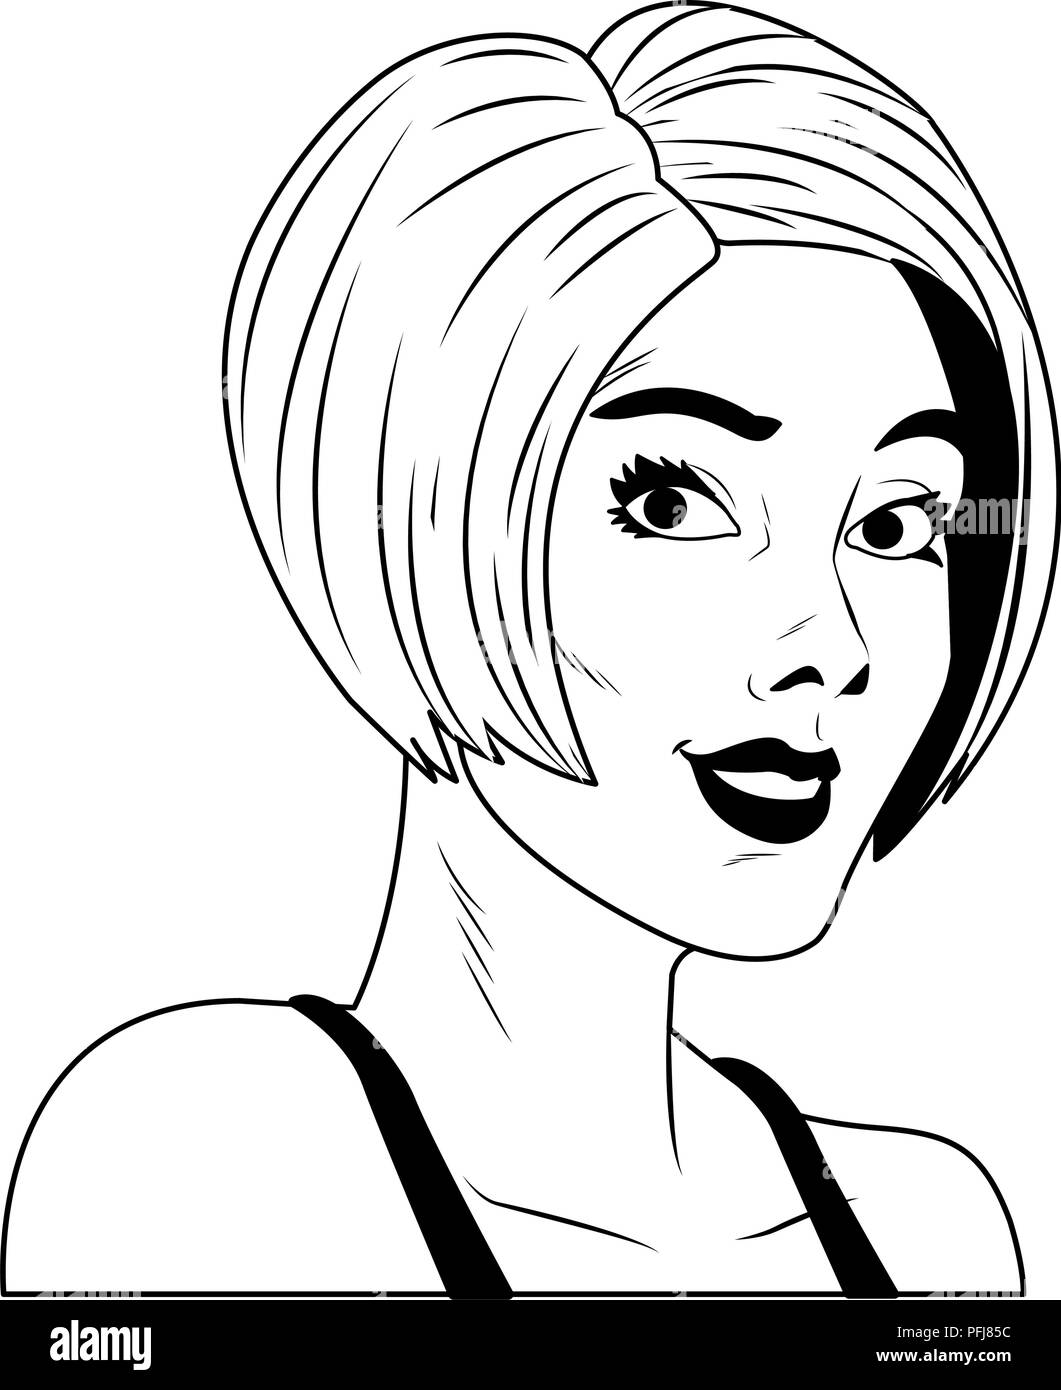 short hair style black and white stock photos images alamy Formal Side Hairstyles woman profile pop art cartoon in black and white stock image